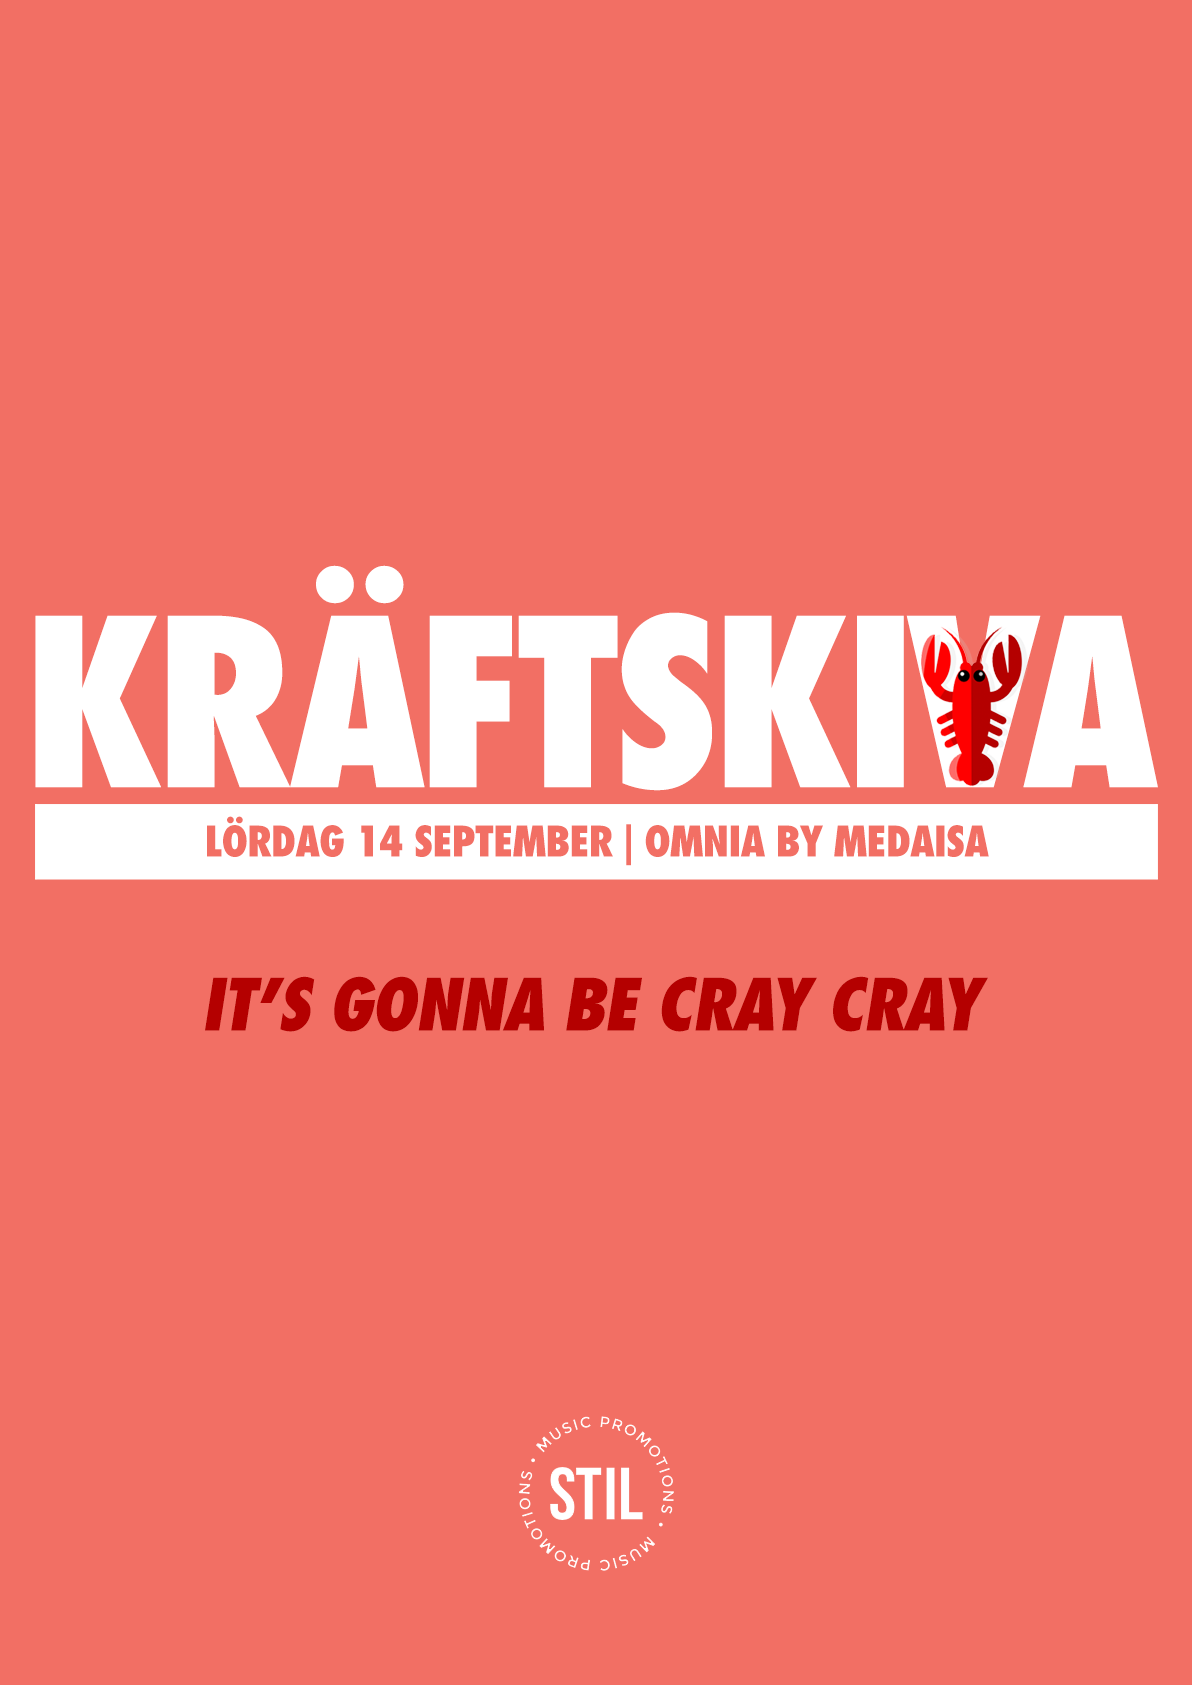 Kräftskiva 2019 (Swedish Crayfish Party) flyer